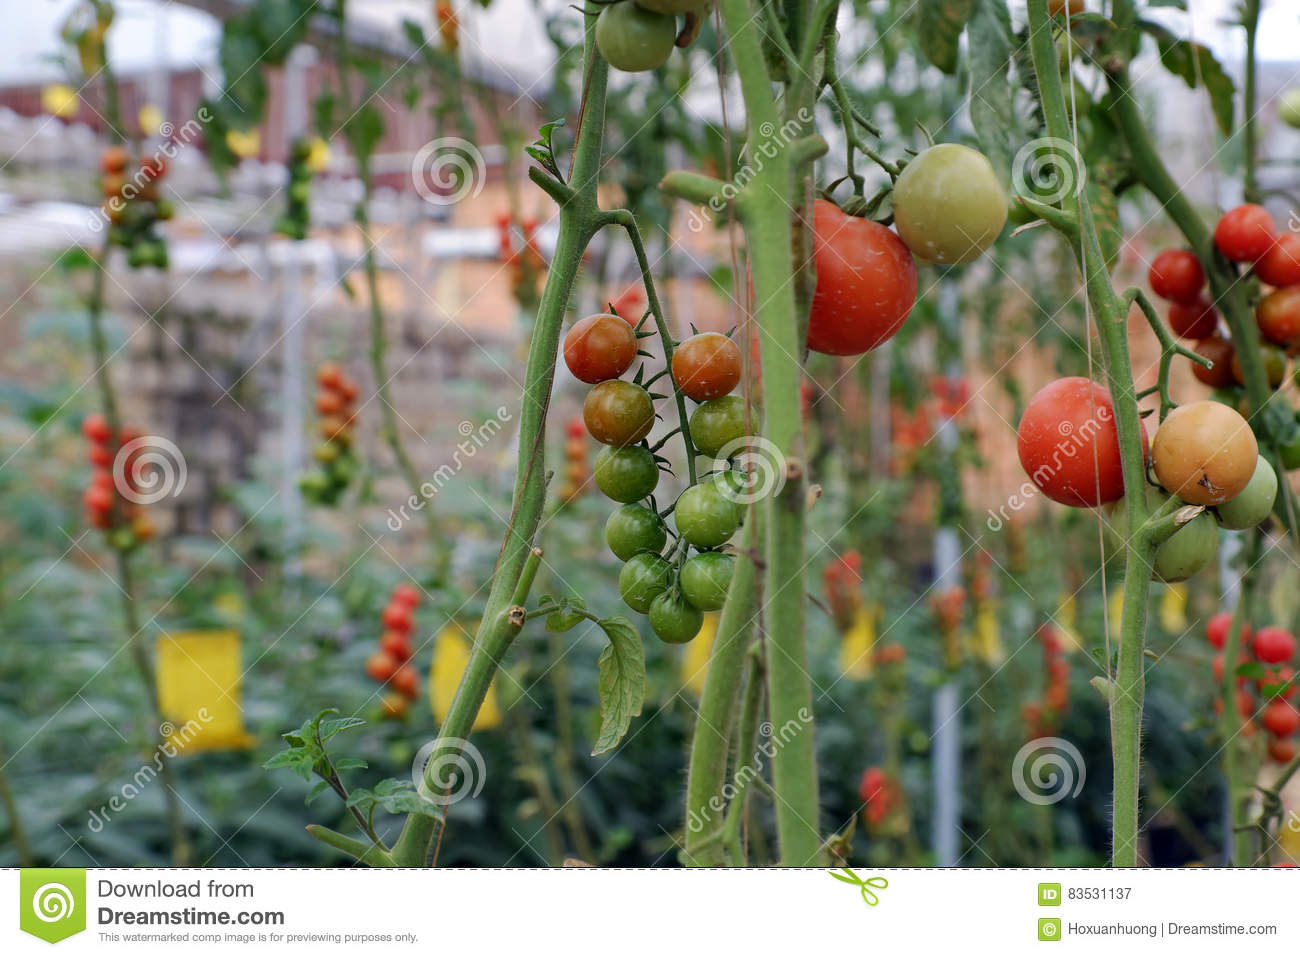 exposure seed garden enlarge exchange southern g tomato peach lrg to p click